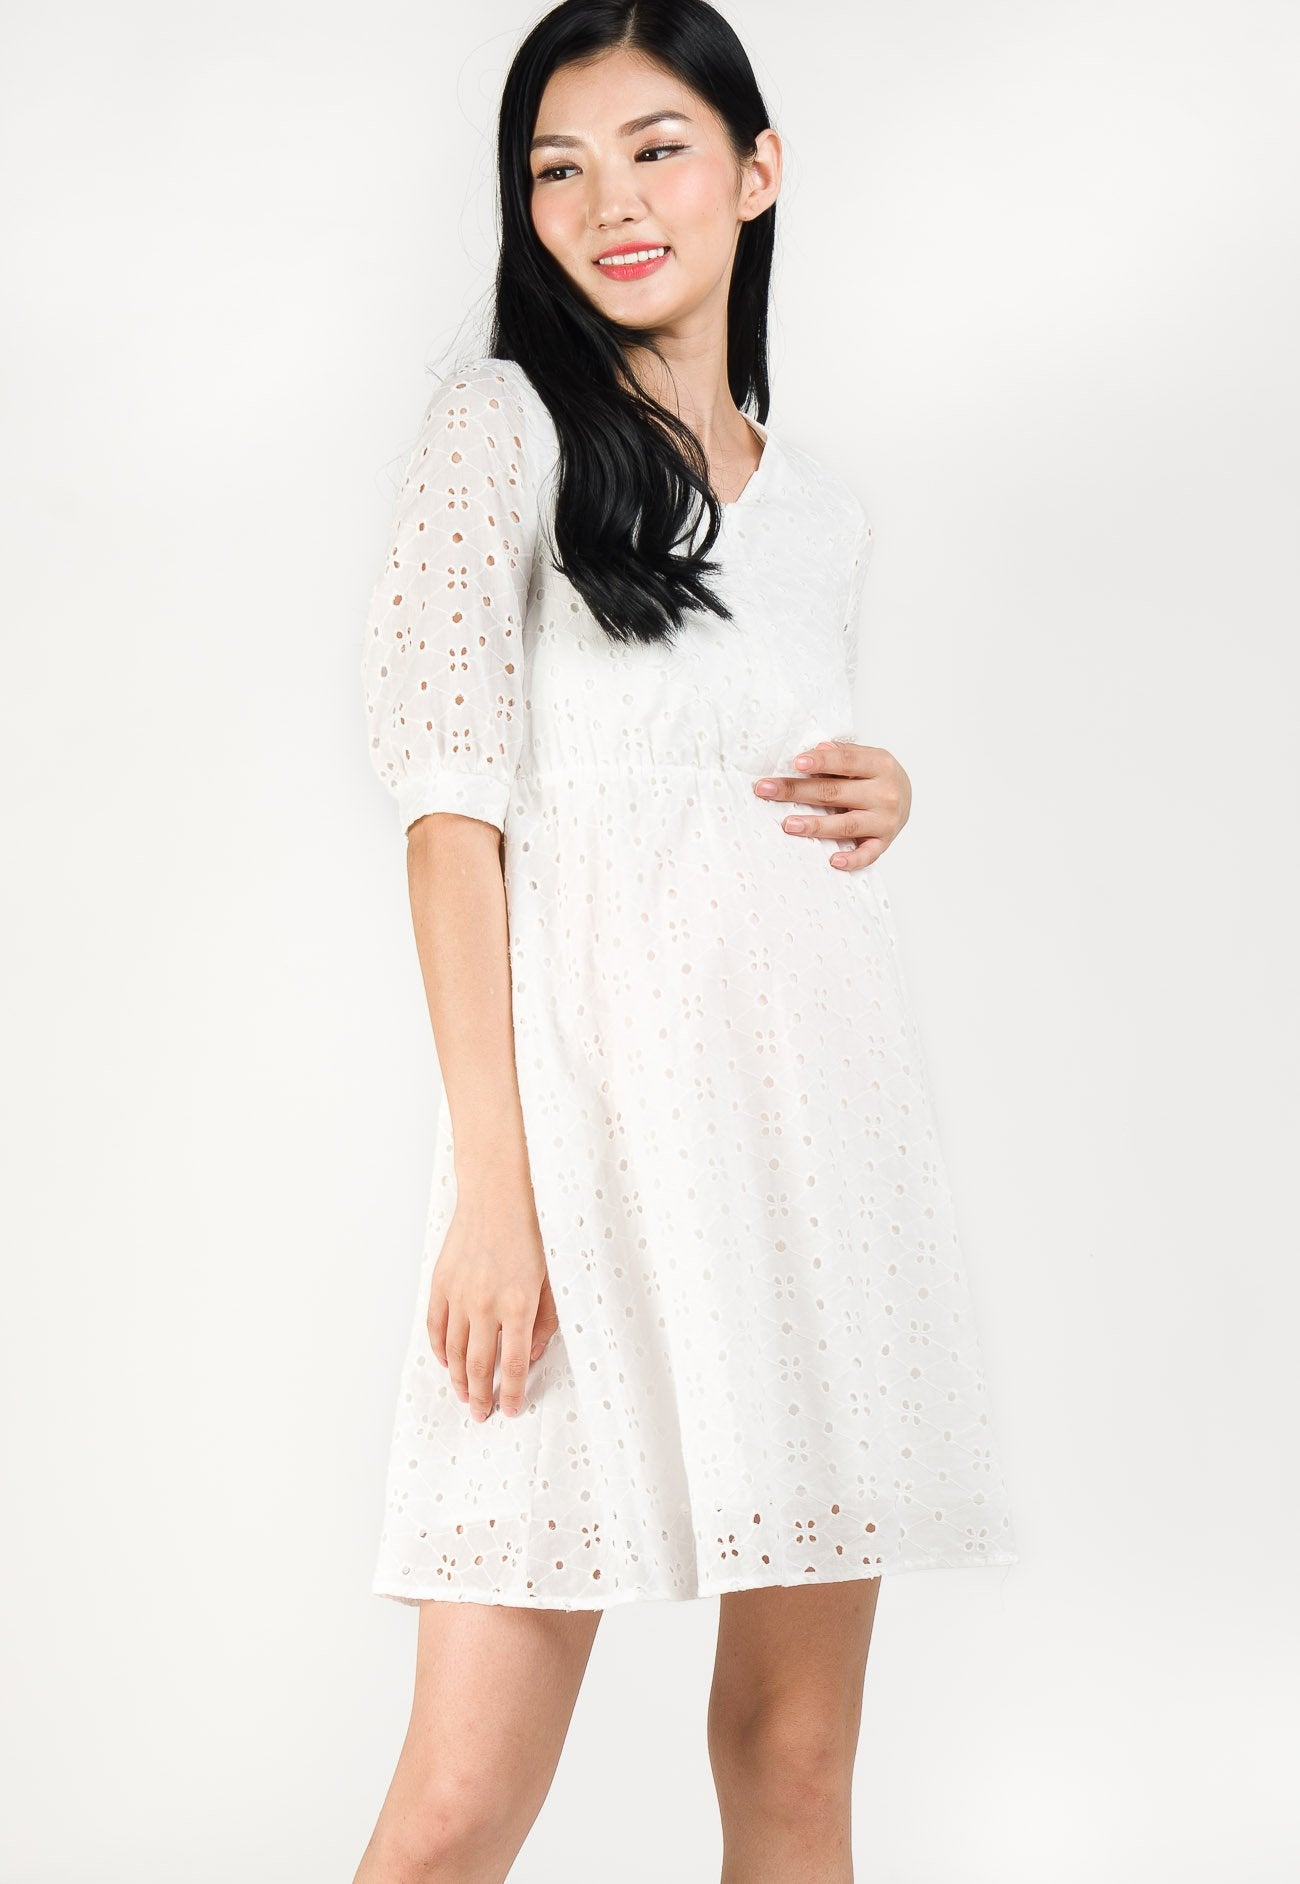 Coco Lace Nursing Dress  by Jump Eat Cry - Maternity and nursing wear